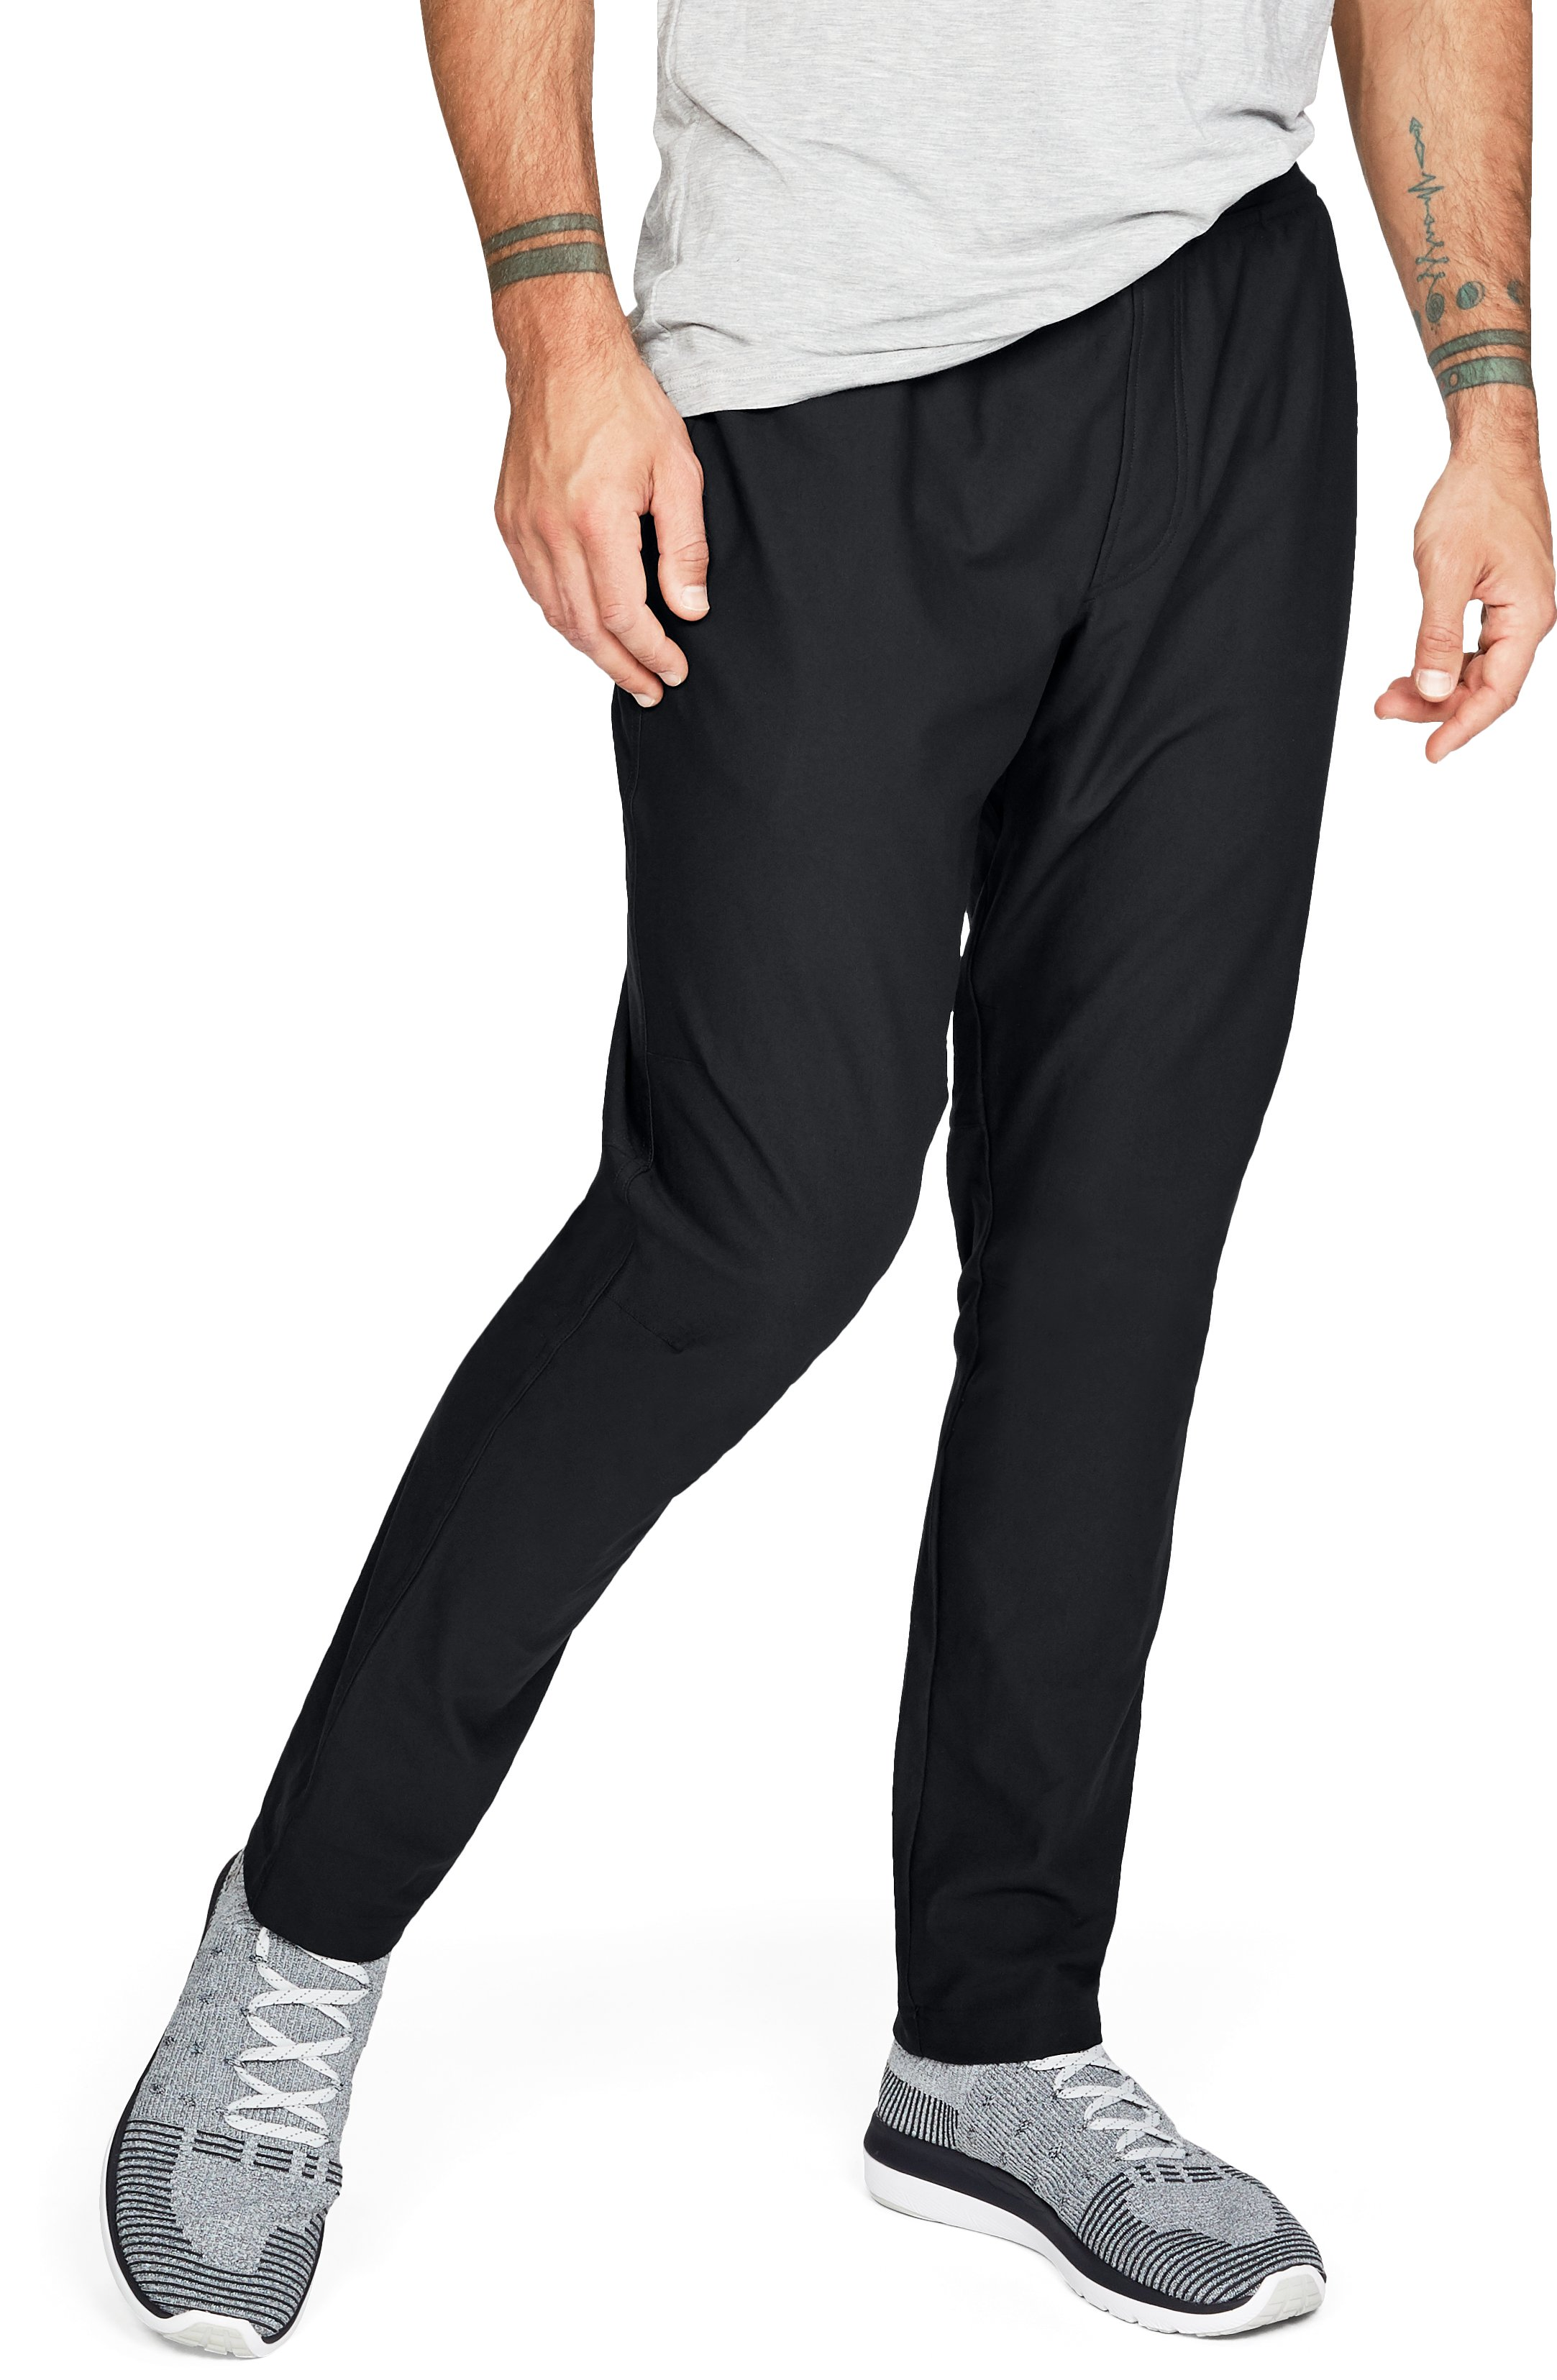 black track pants Men's Athlete Recovery Track Pants These are very comfortable and are my new favorite pant to wear, whether it's just around the house or going out on those more casual days....I like them so much I just purchased the Athlete Recovery pants for sleeping!...I like these a lot, though the recovery sleep wear line is more comfortable.